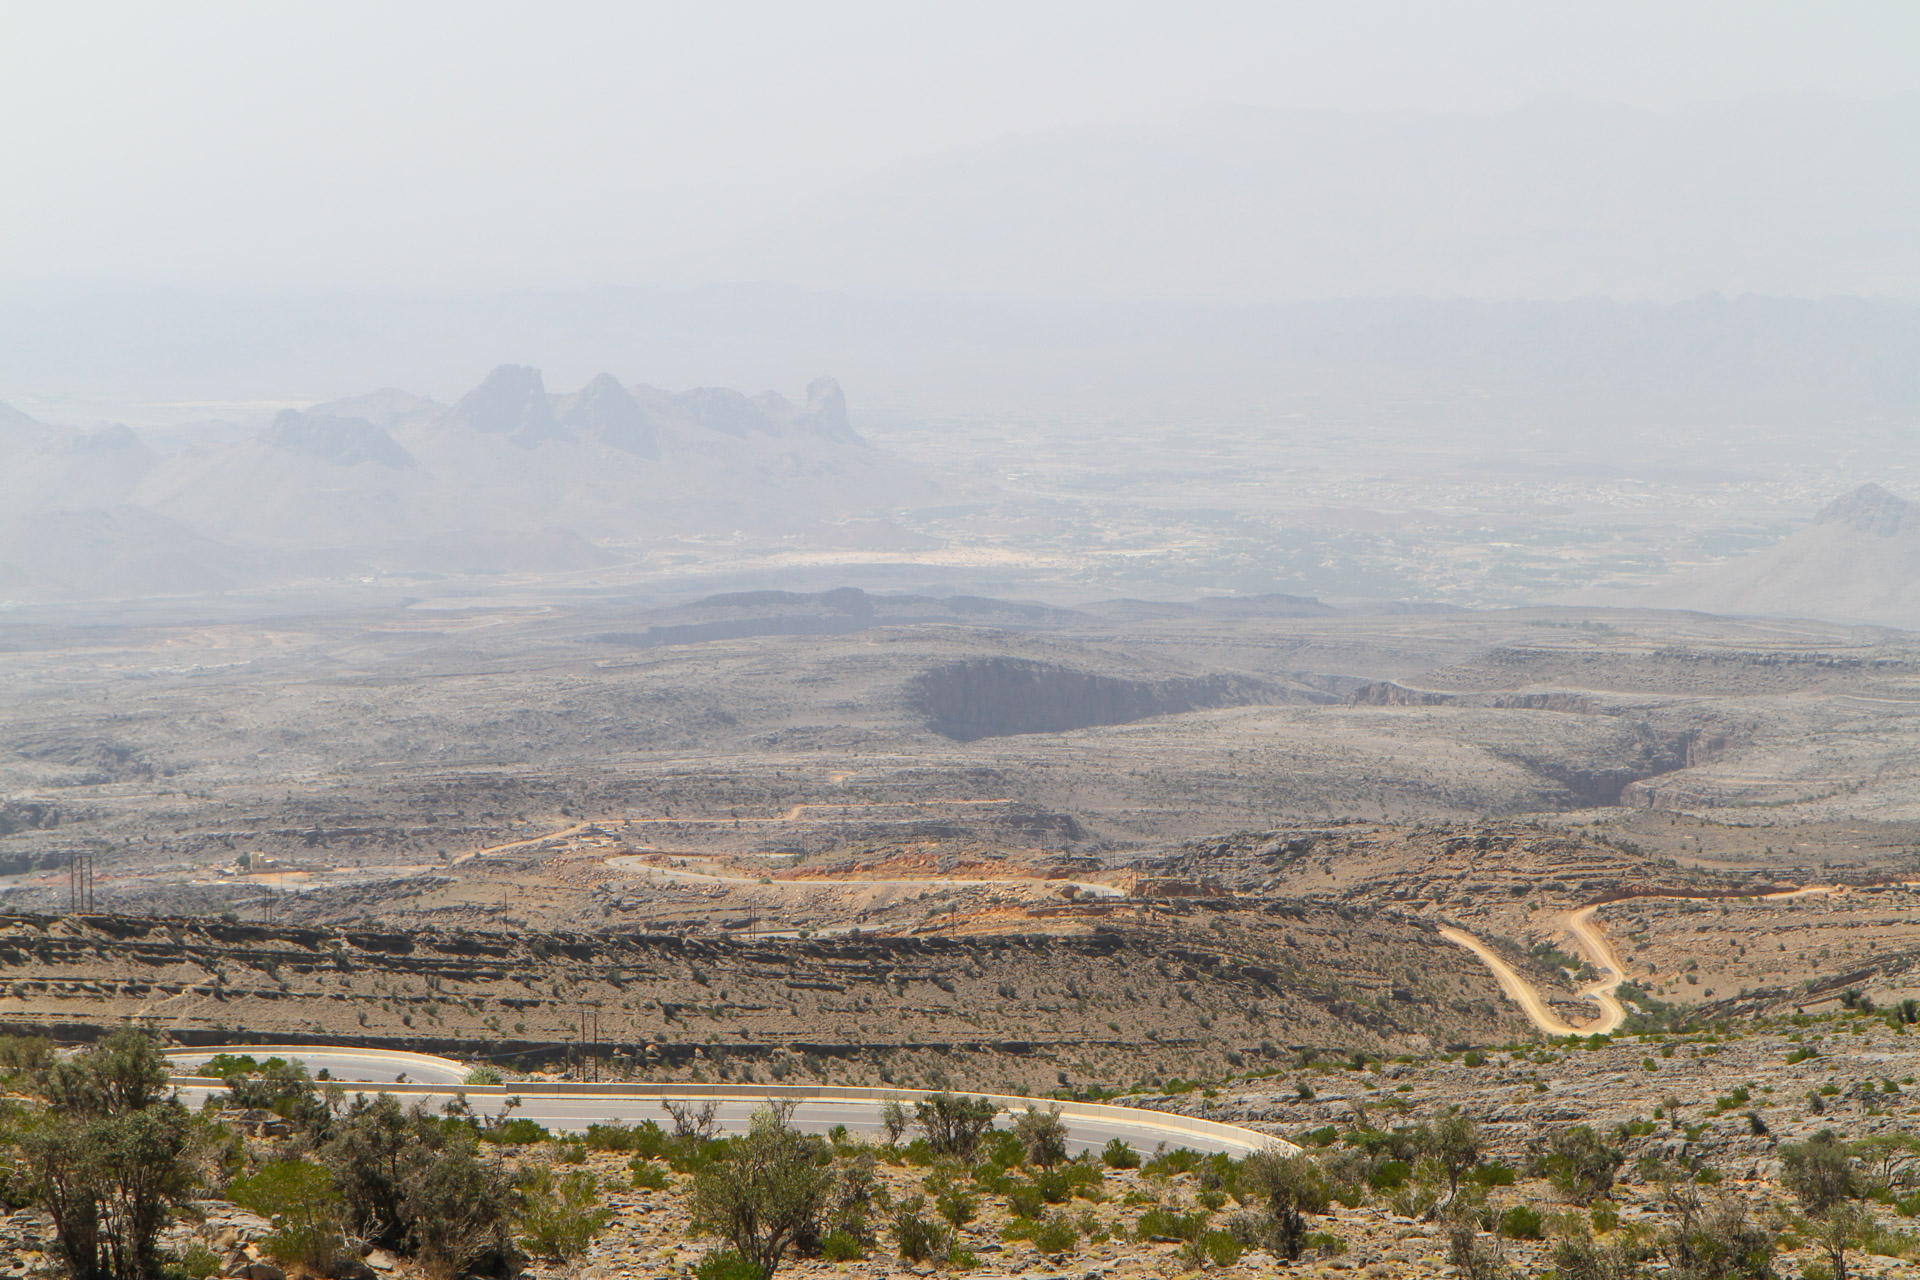 Overlooking the omani backlands.